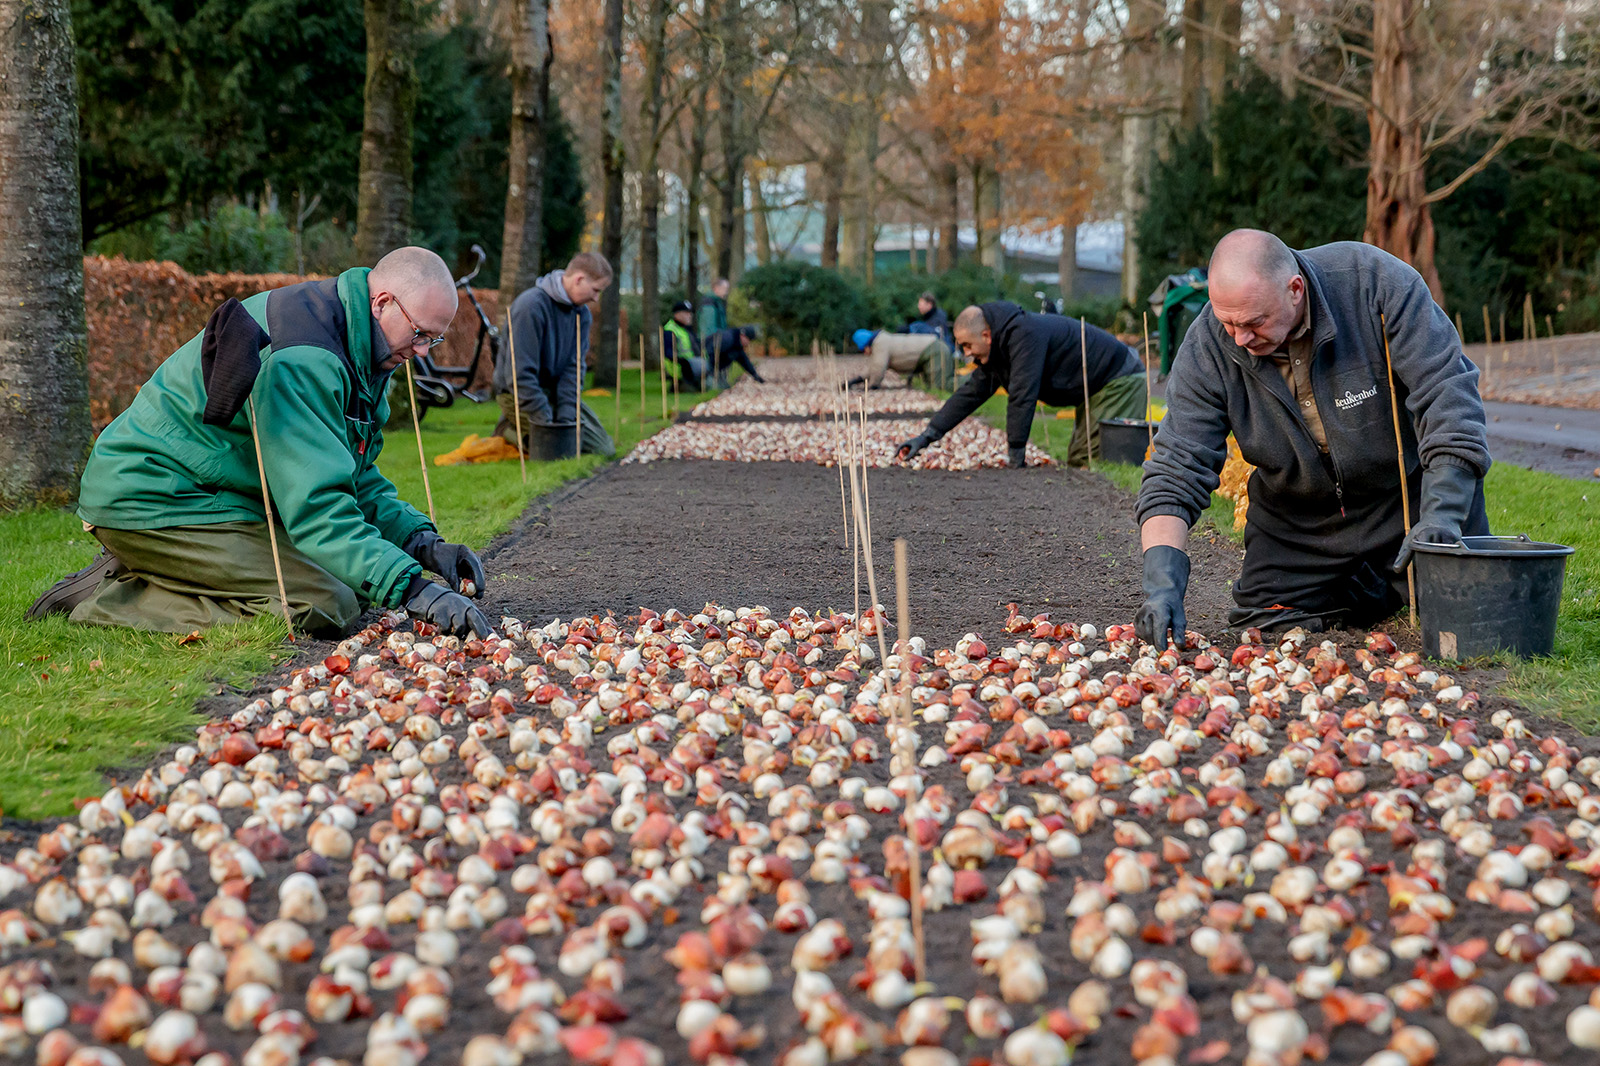 Planting flower bulbs in Keukenhof